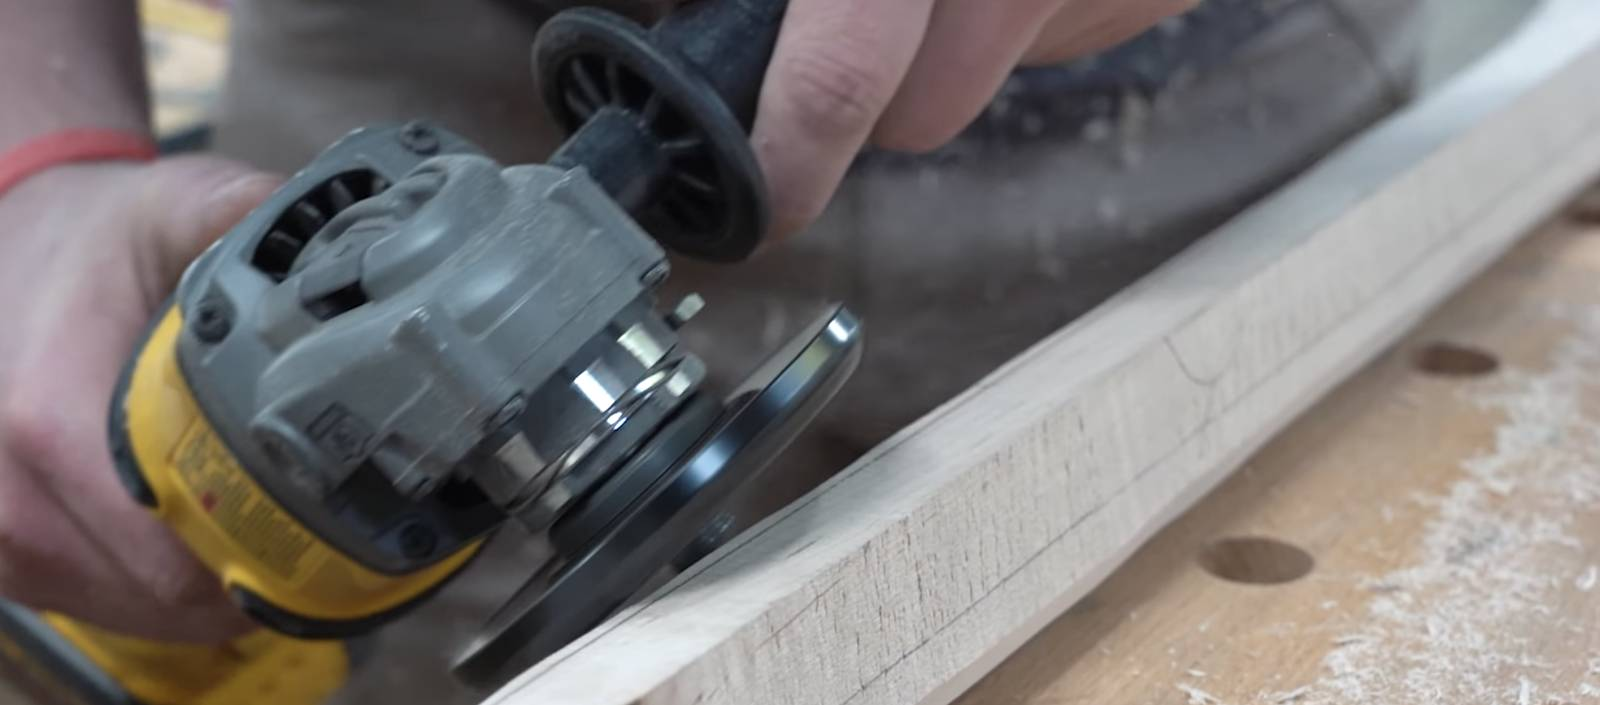 John Malecki rounds the handle to his DIY pizza peel with an angle grinder